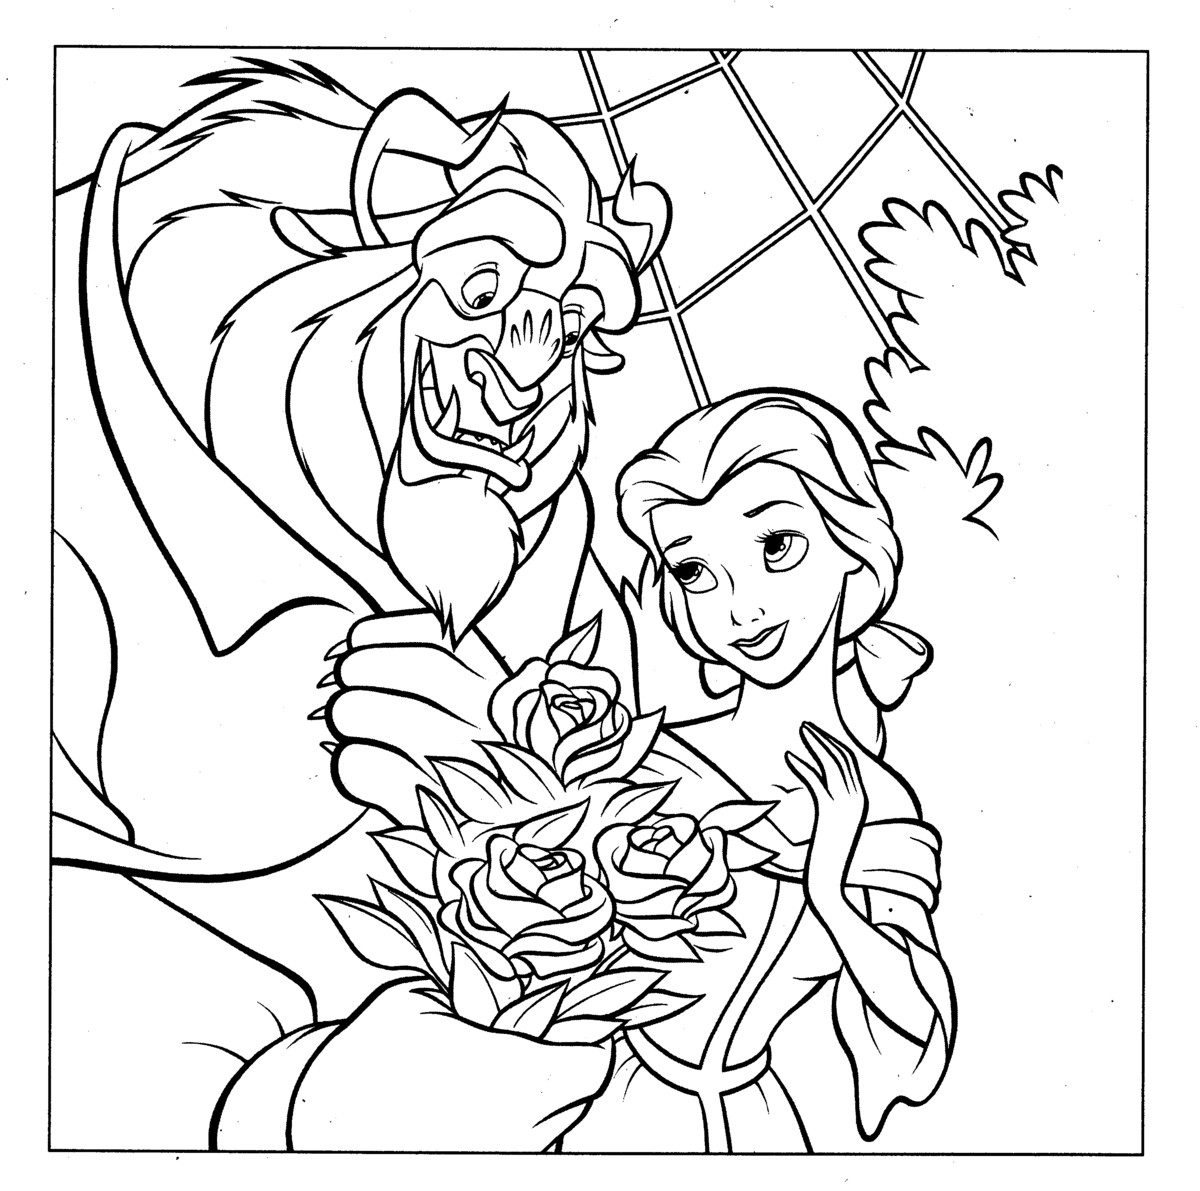 beauty and the beast colouring page beauty and the beast coloringcolorcom the beauty page colouring beast and